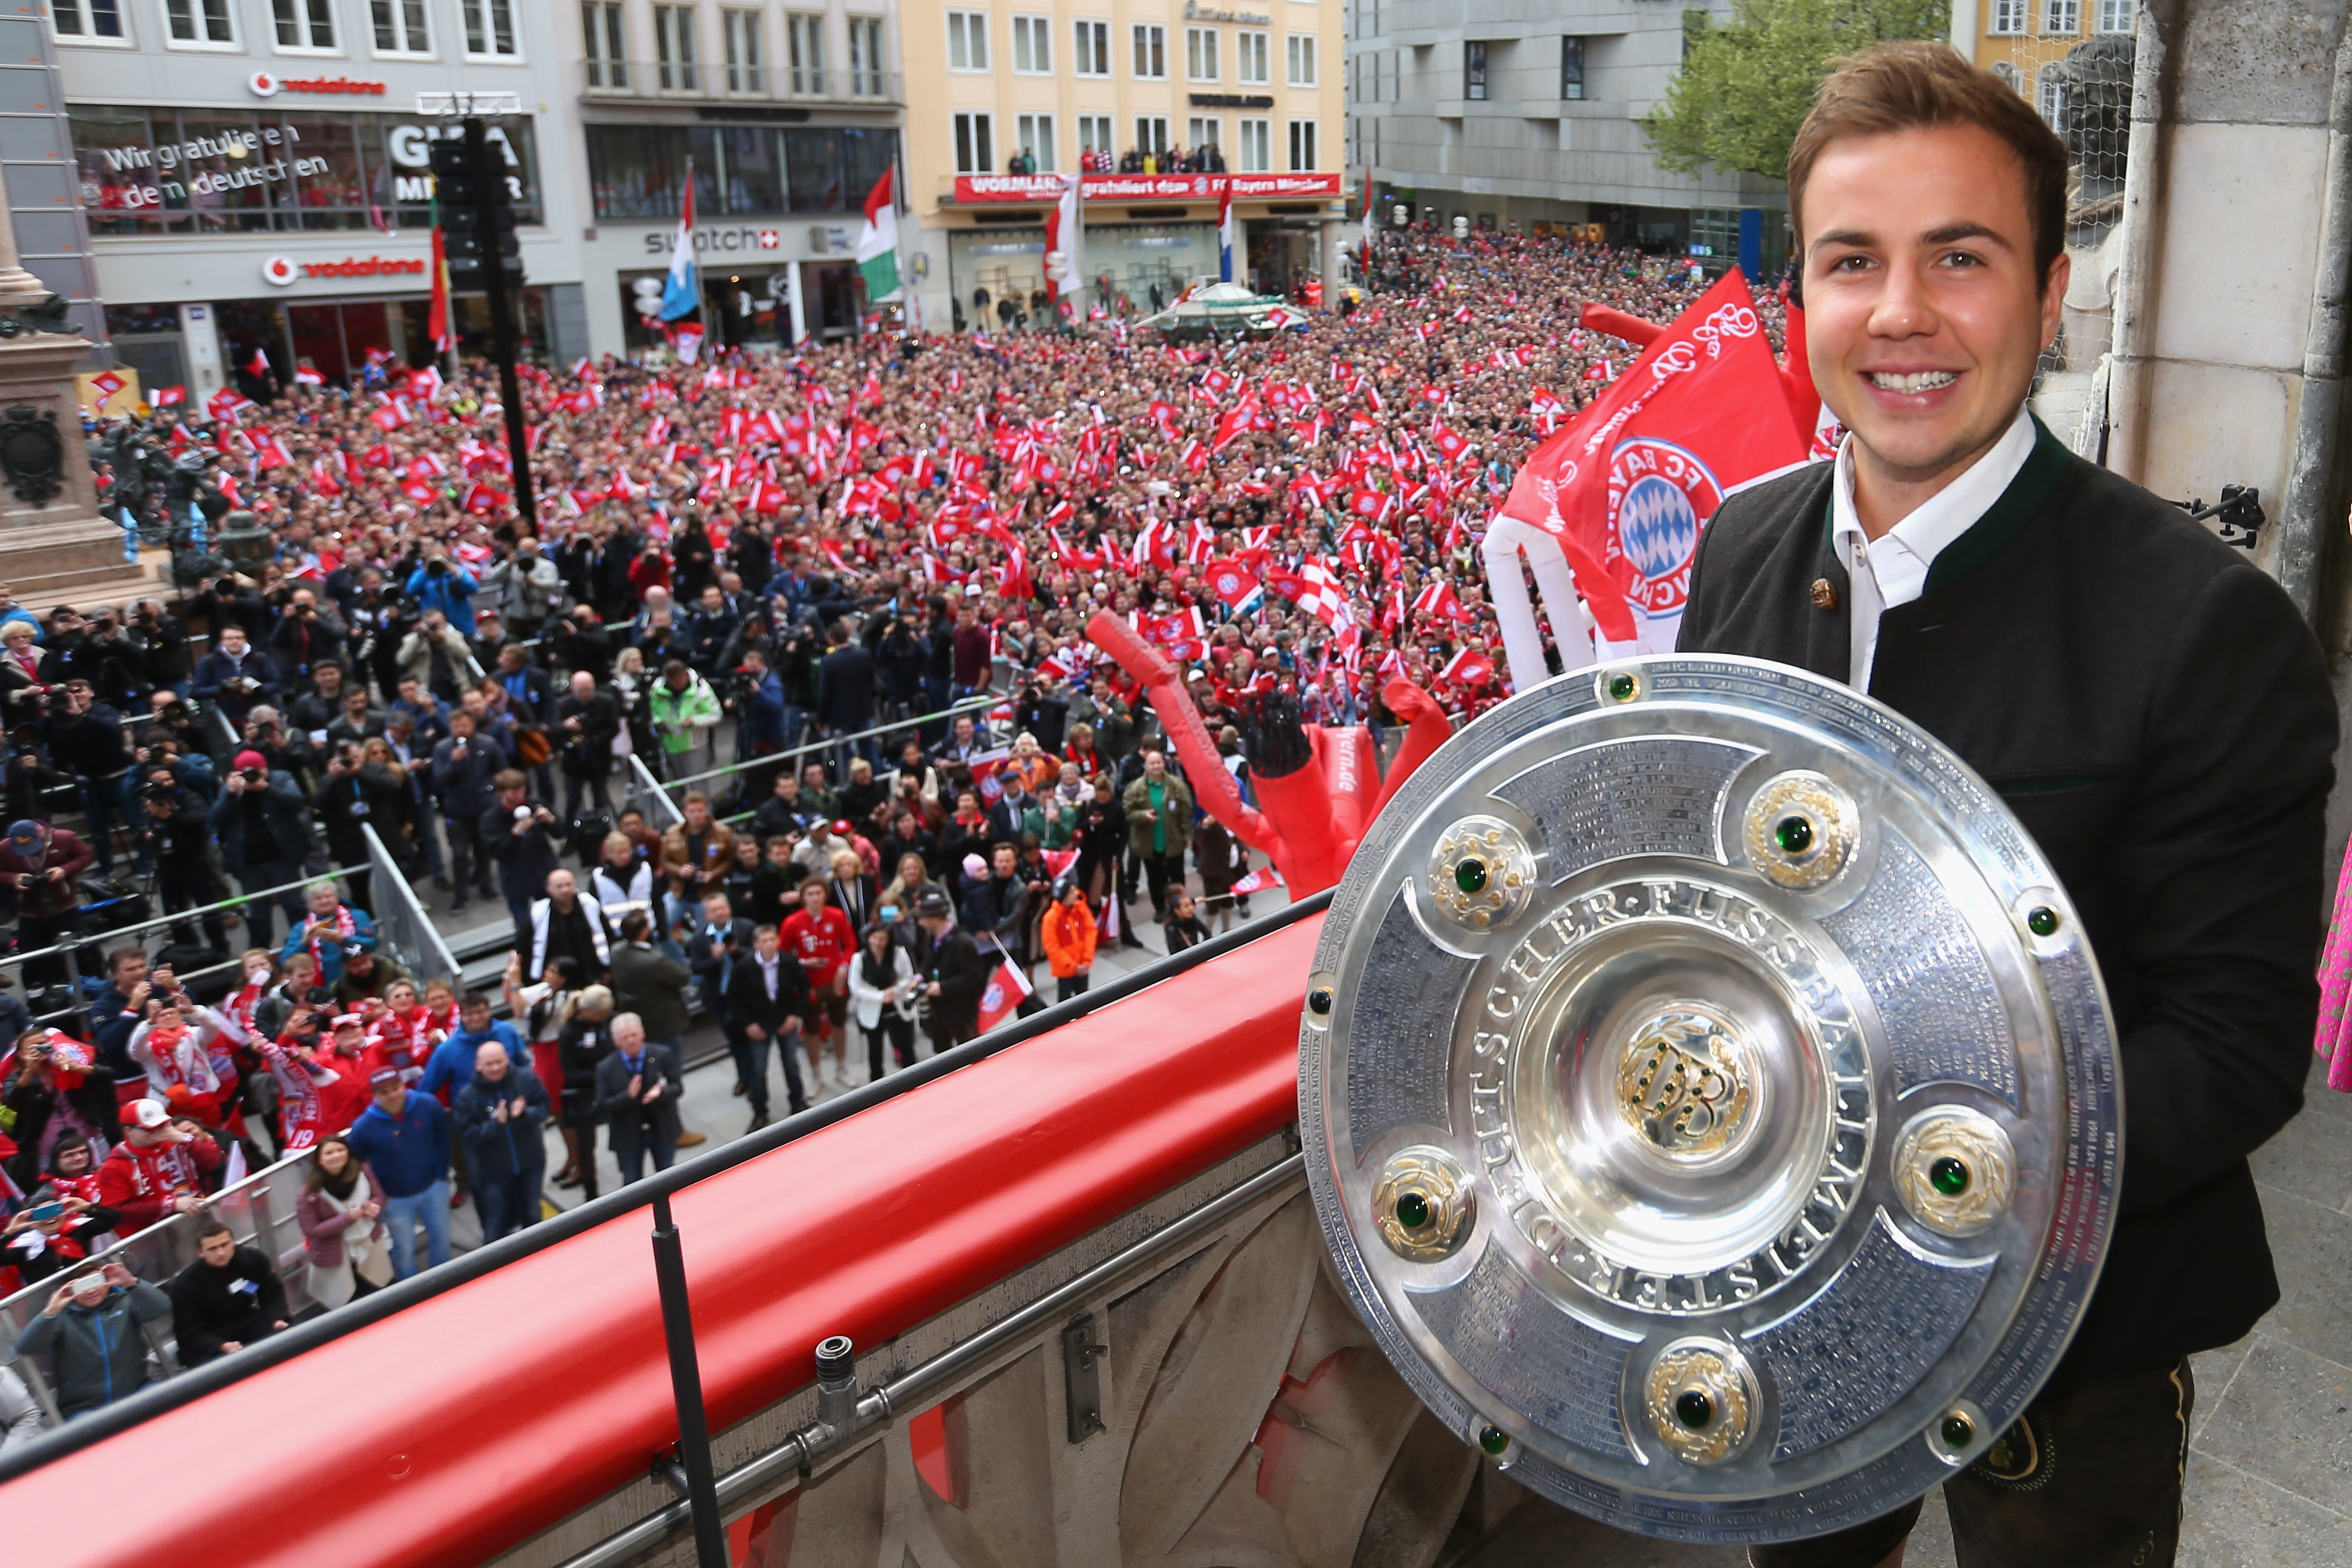 Mario Gotze negotiations over transfer to Borussia Dortmund confirmed by Bayern Munich